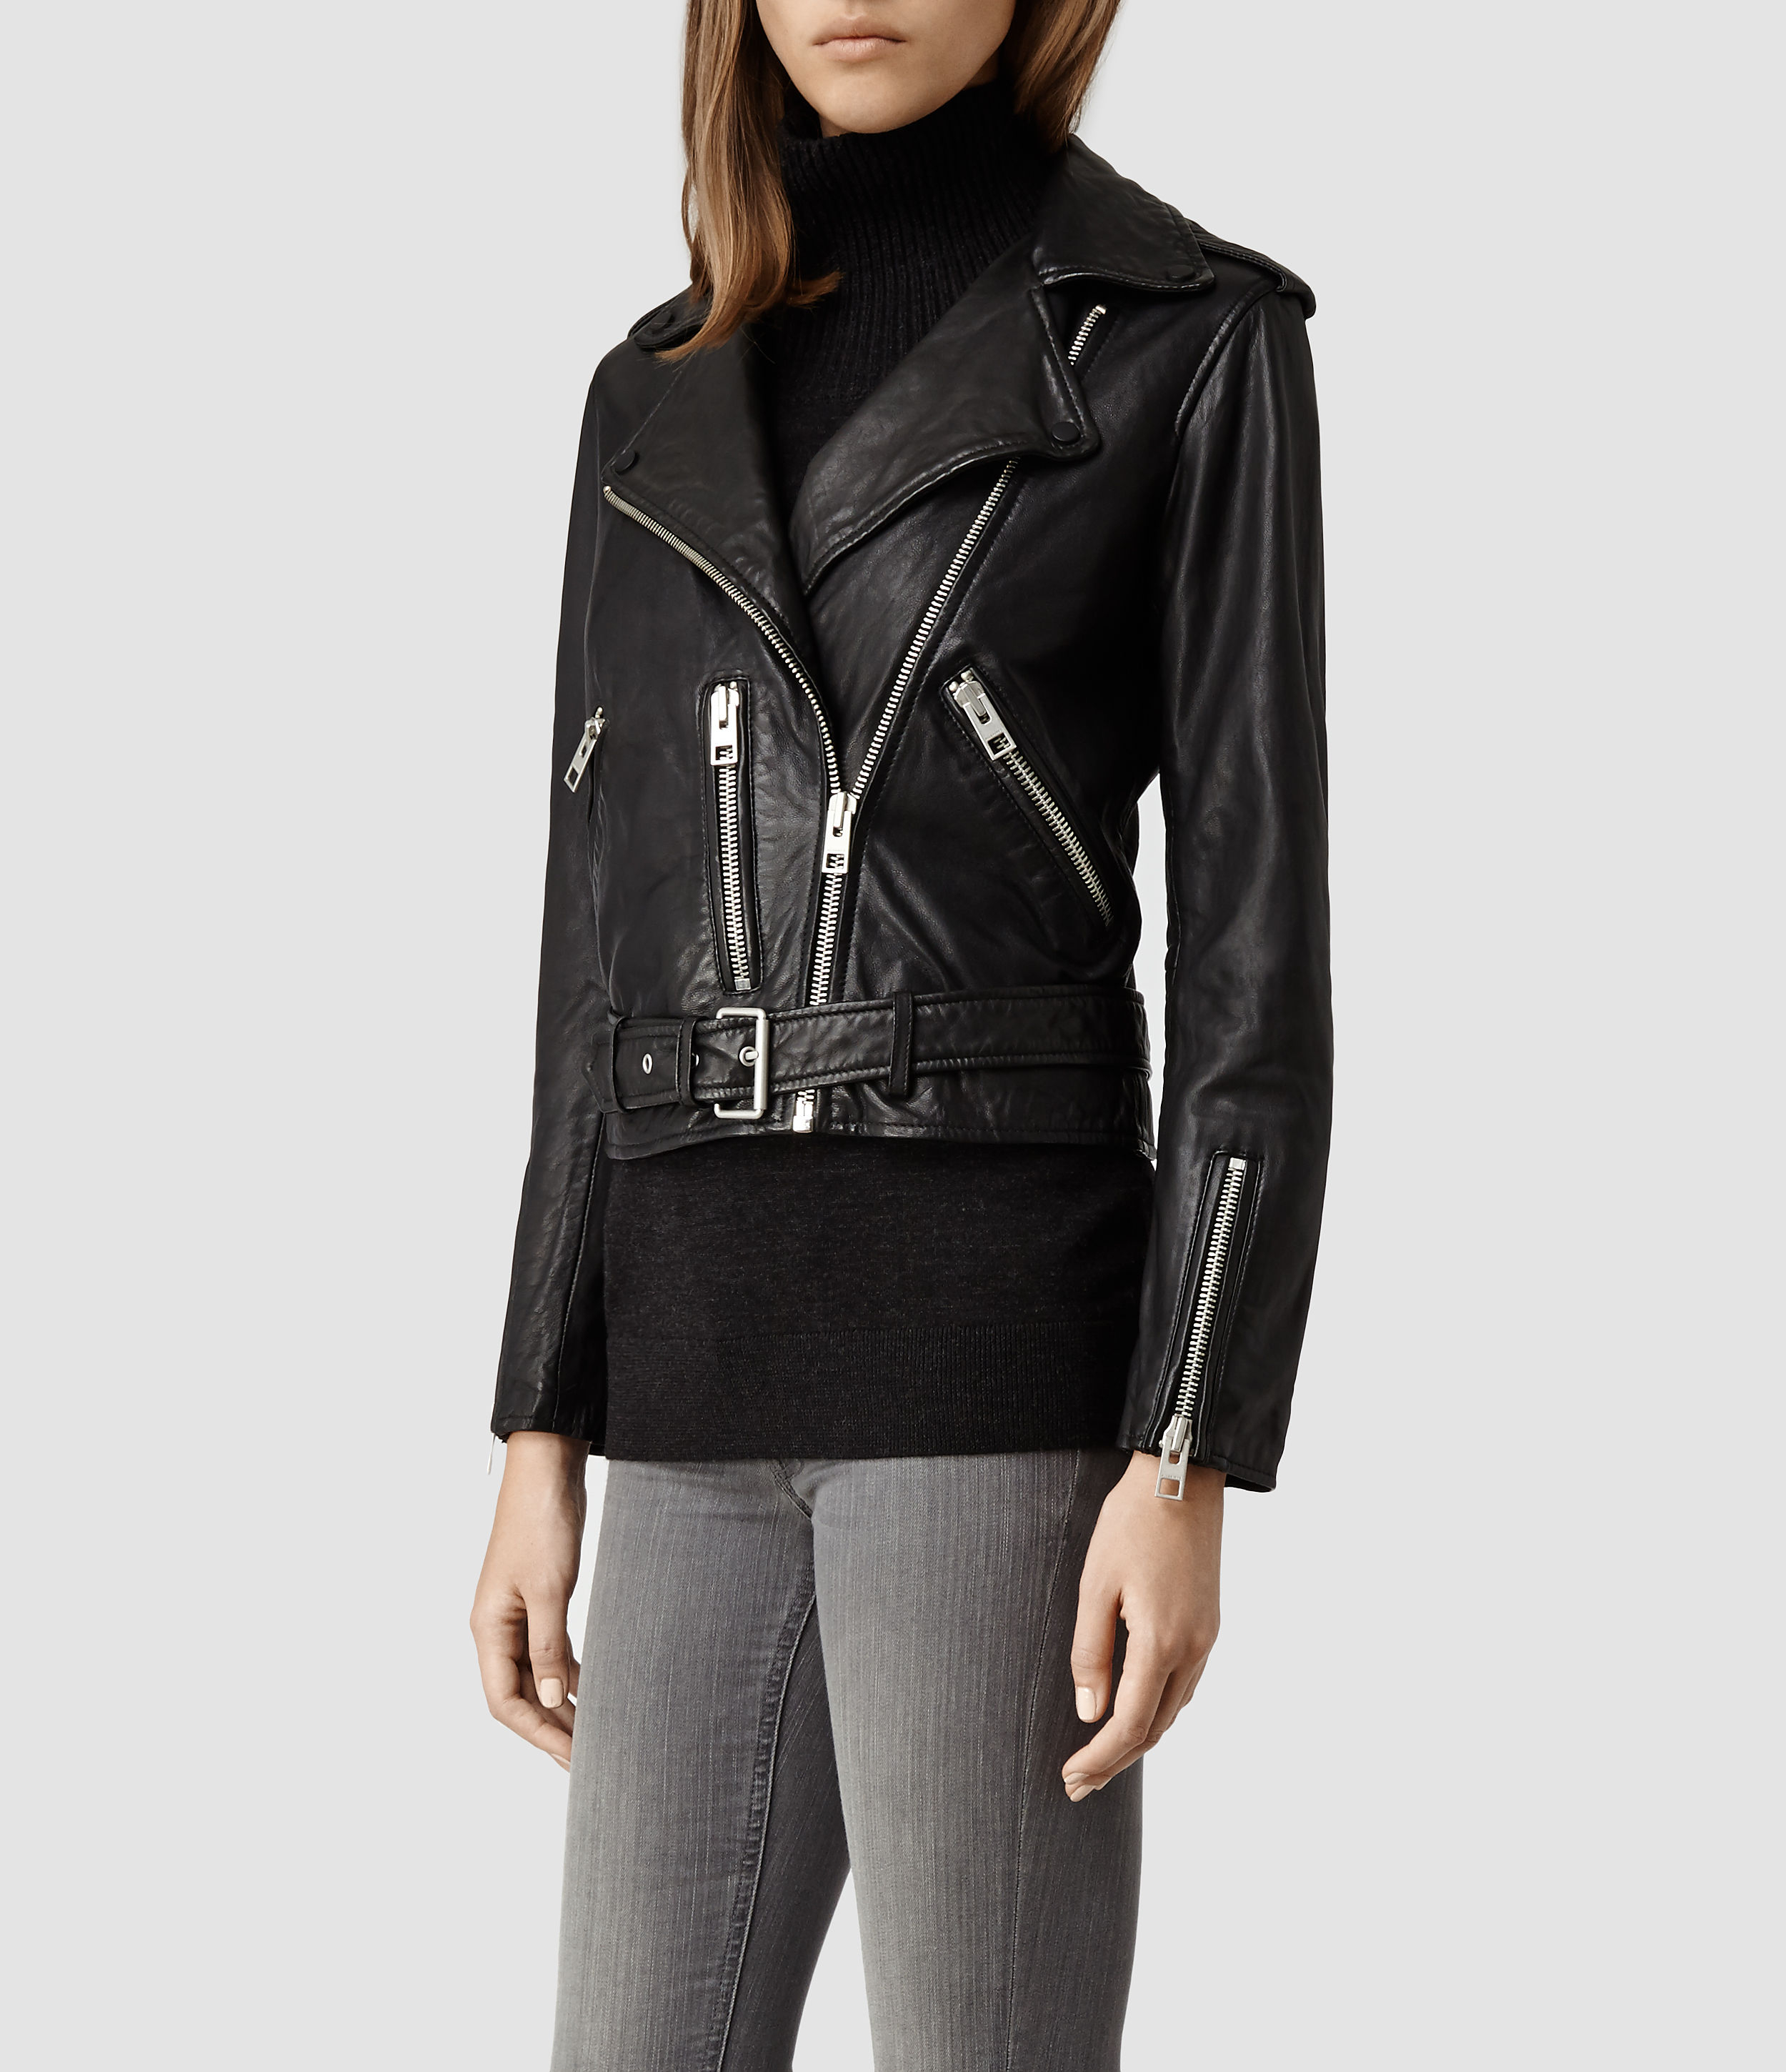 All Saints Women's Leather Balfern Biker Jacket | eBay